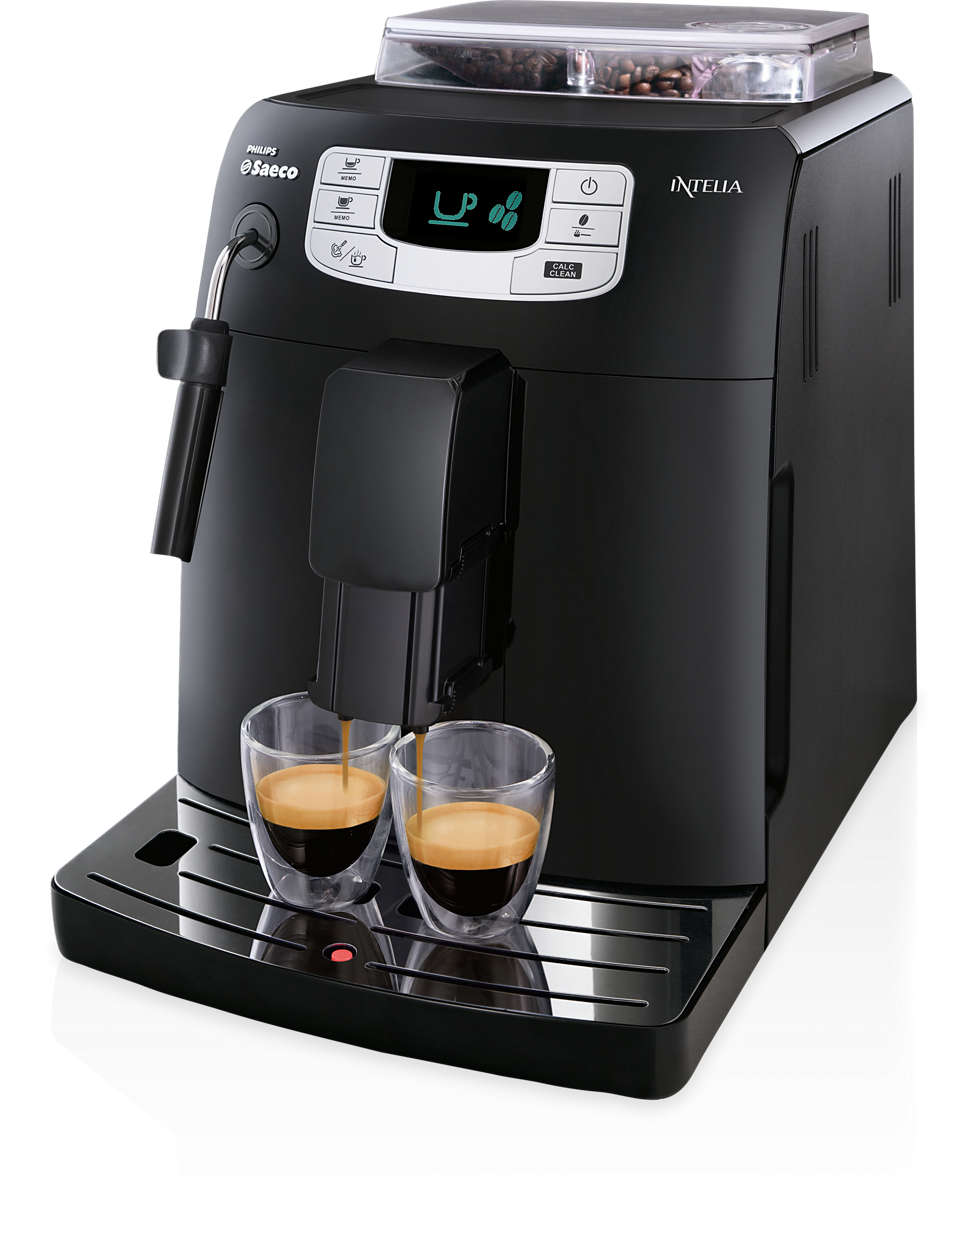 One-touch espresso and coffee